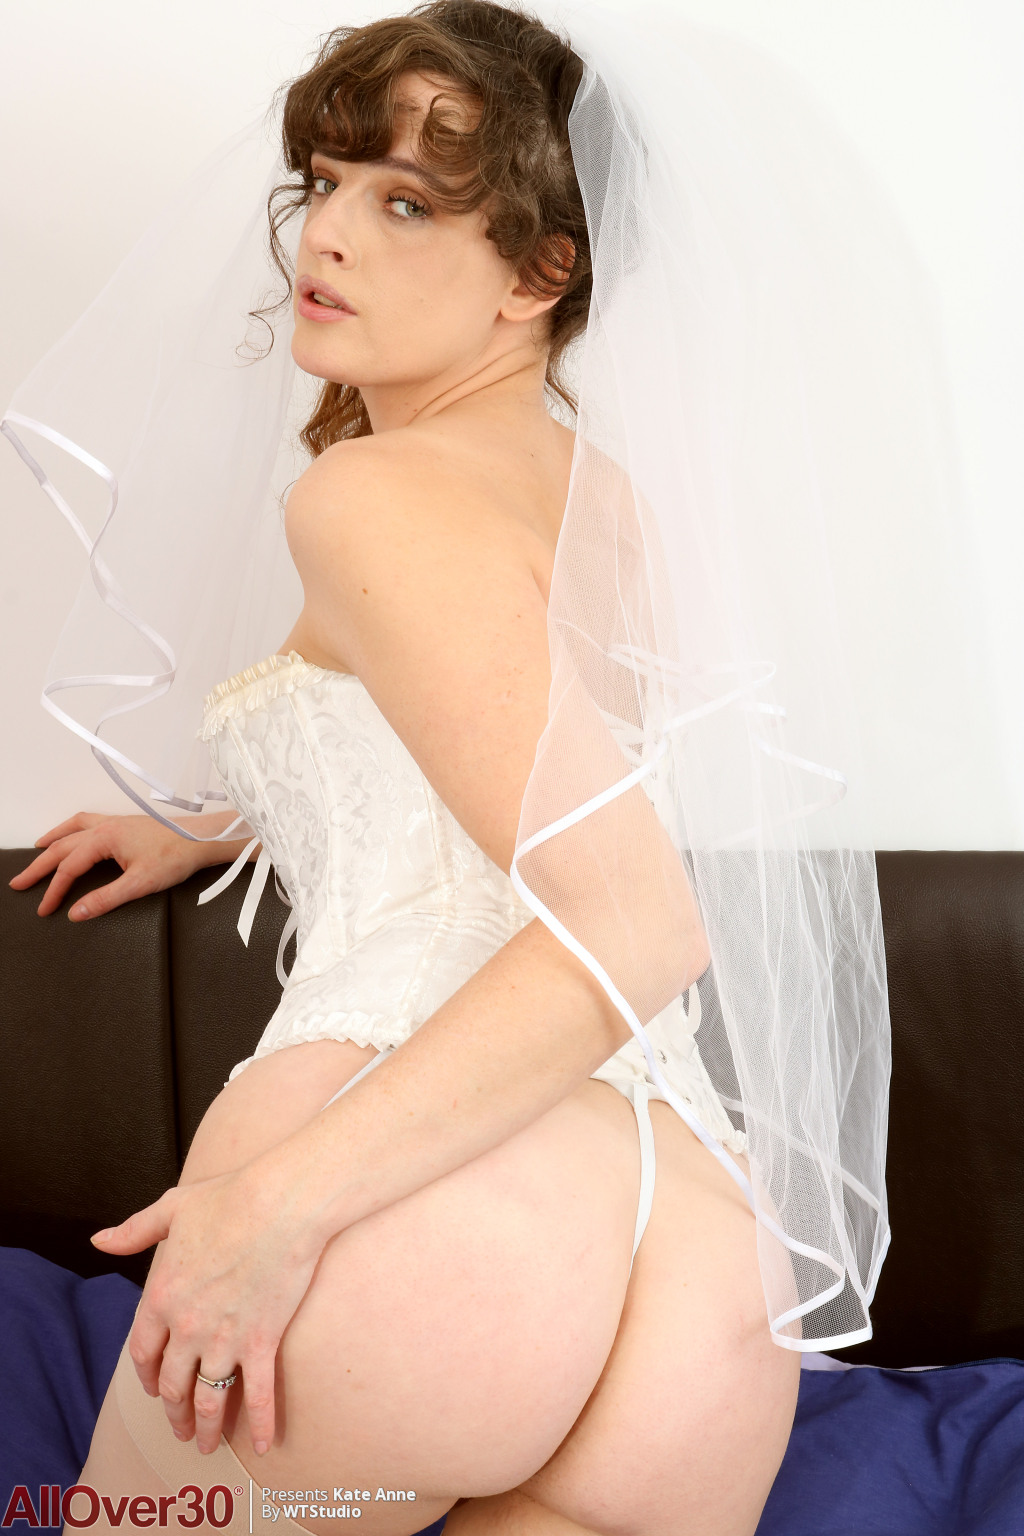 kate-anne-busty-bride-04